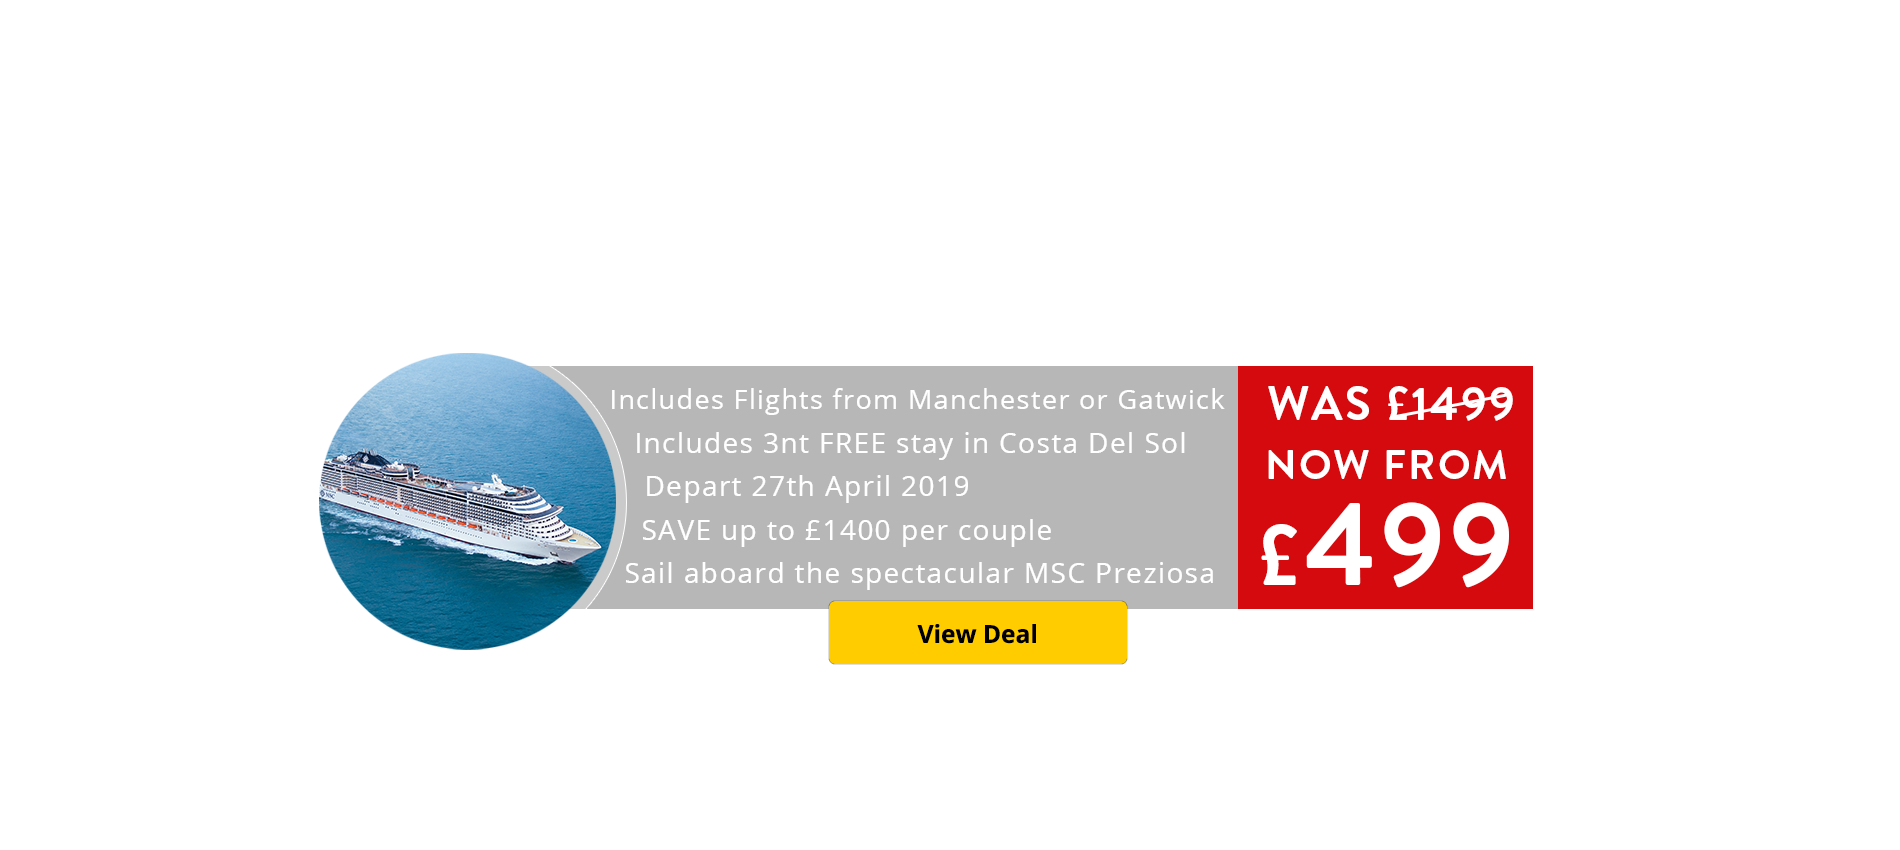 Don't miss our Deal of the Week - 12 Night Hamburg to Malaga incuding free 3 night Costa Del Sol stay from only £499